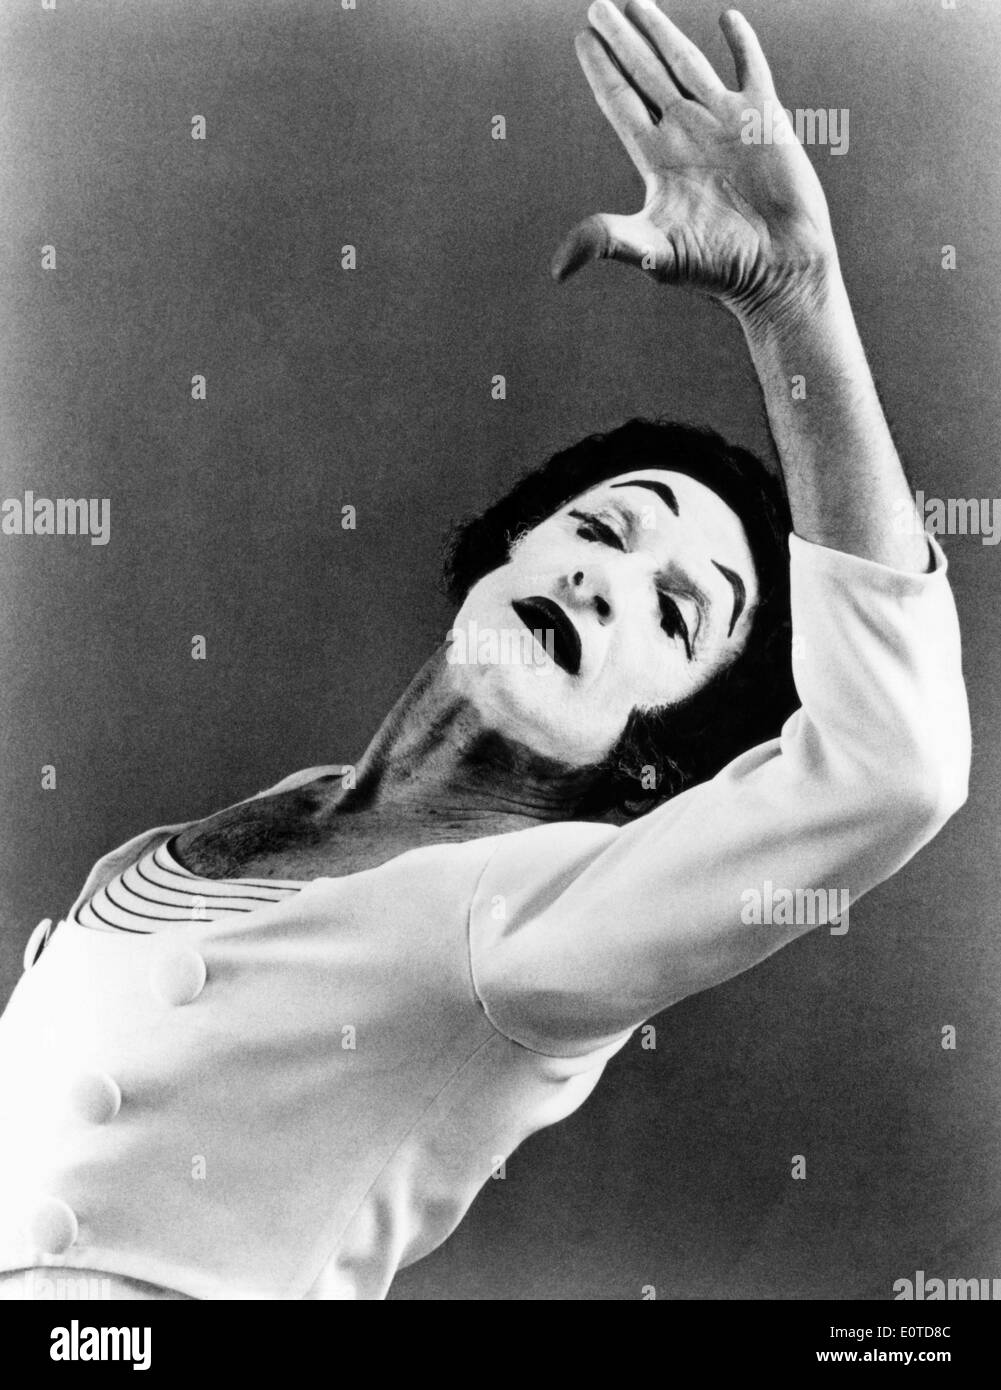 Marcel Marceau (1923-2007), French Actor and Mime, Portrait with White Makeup, circa 1960's - Stock Image